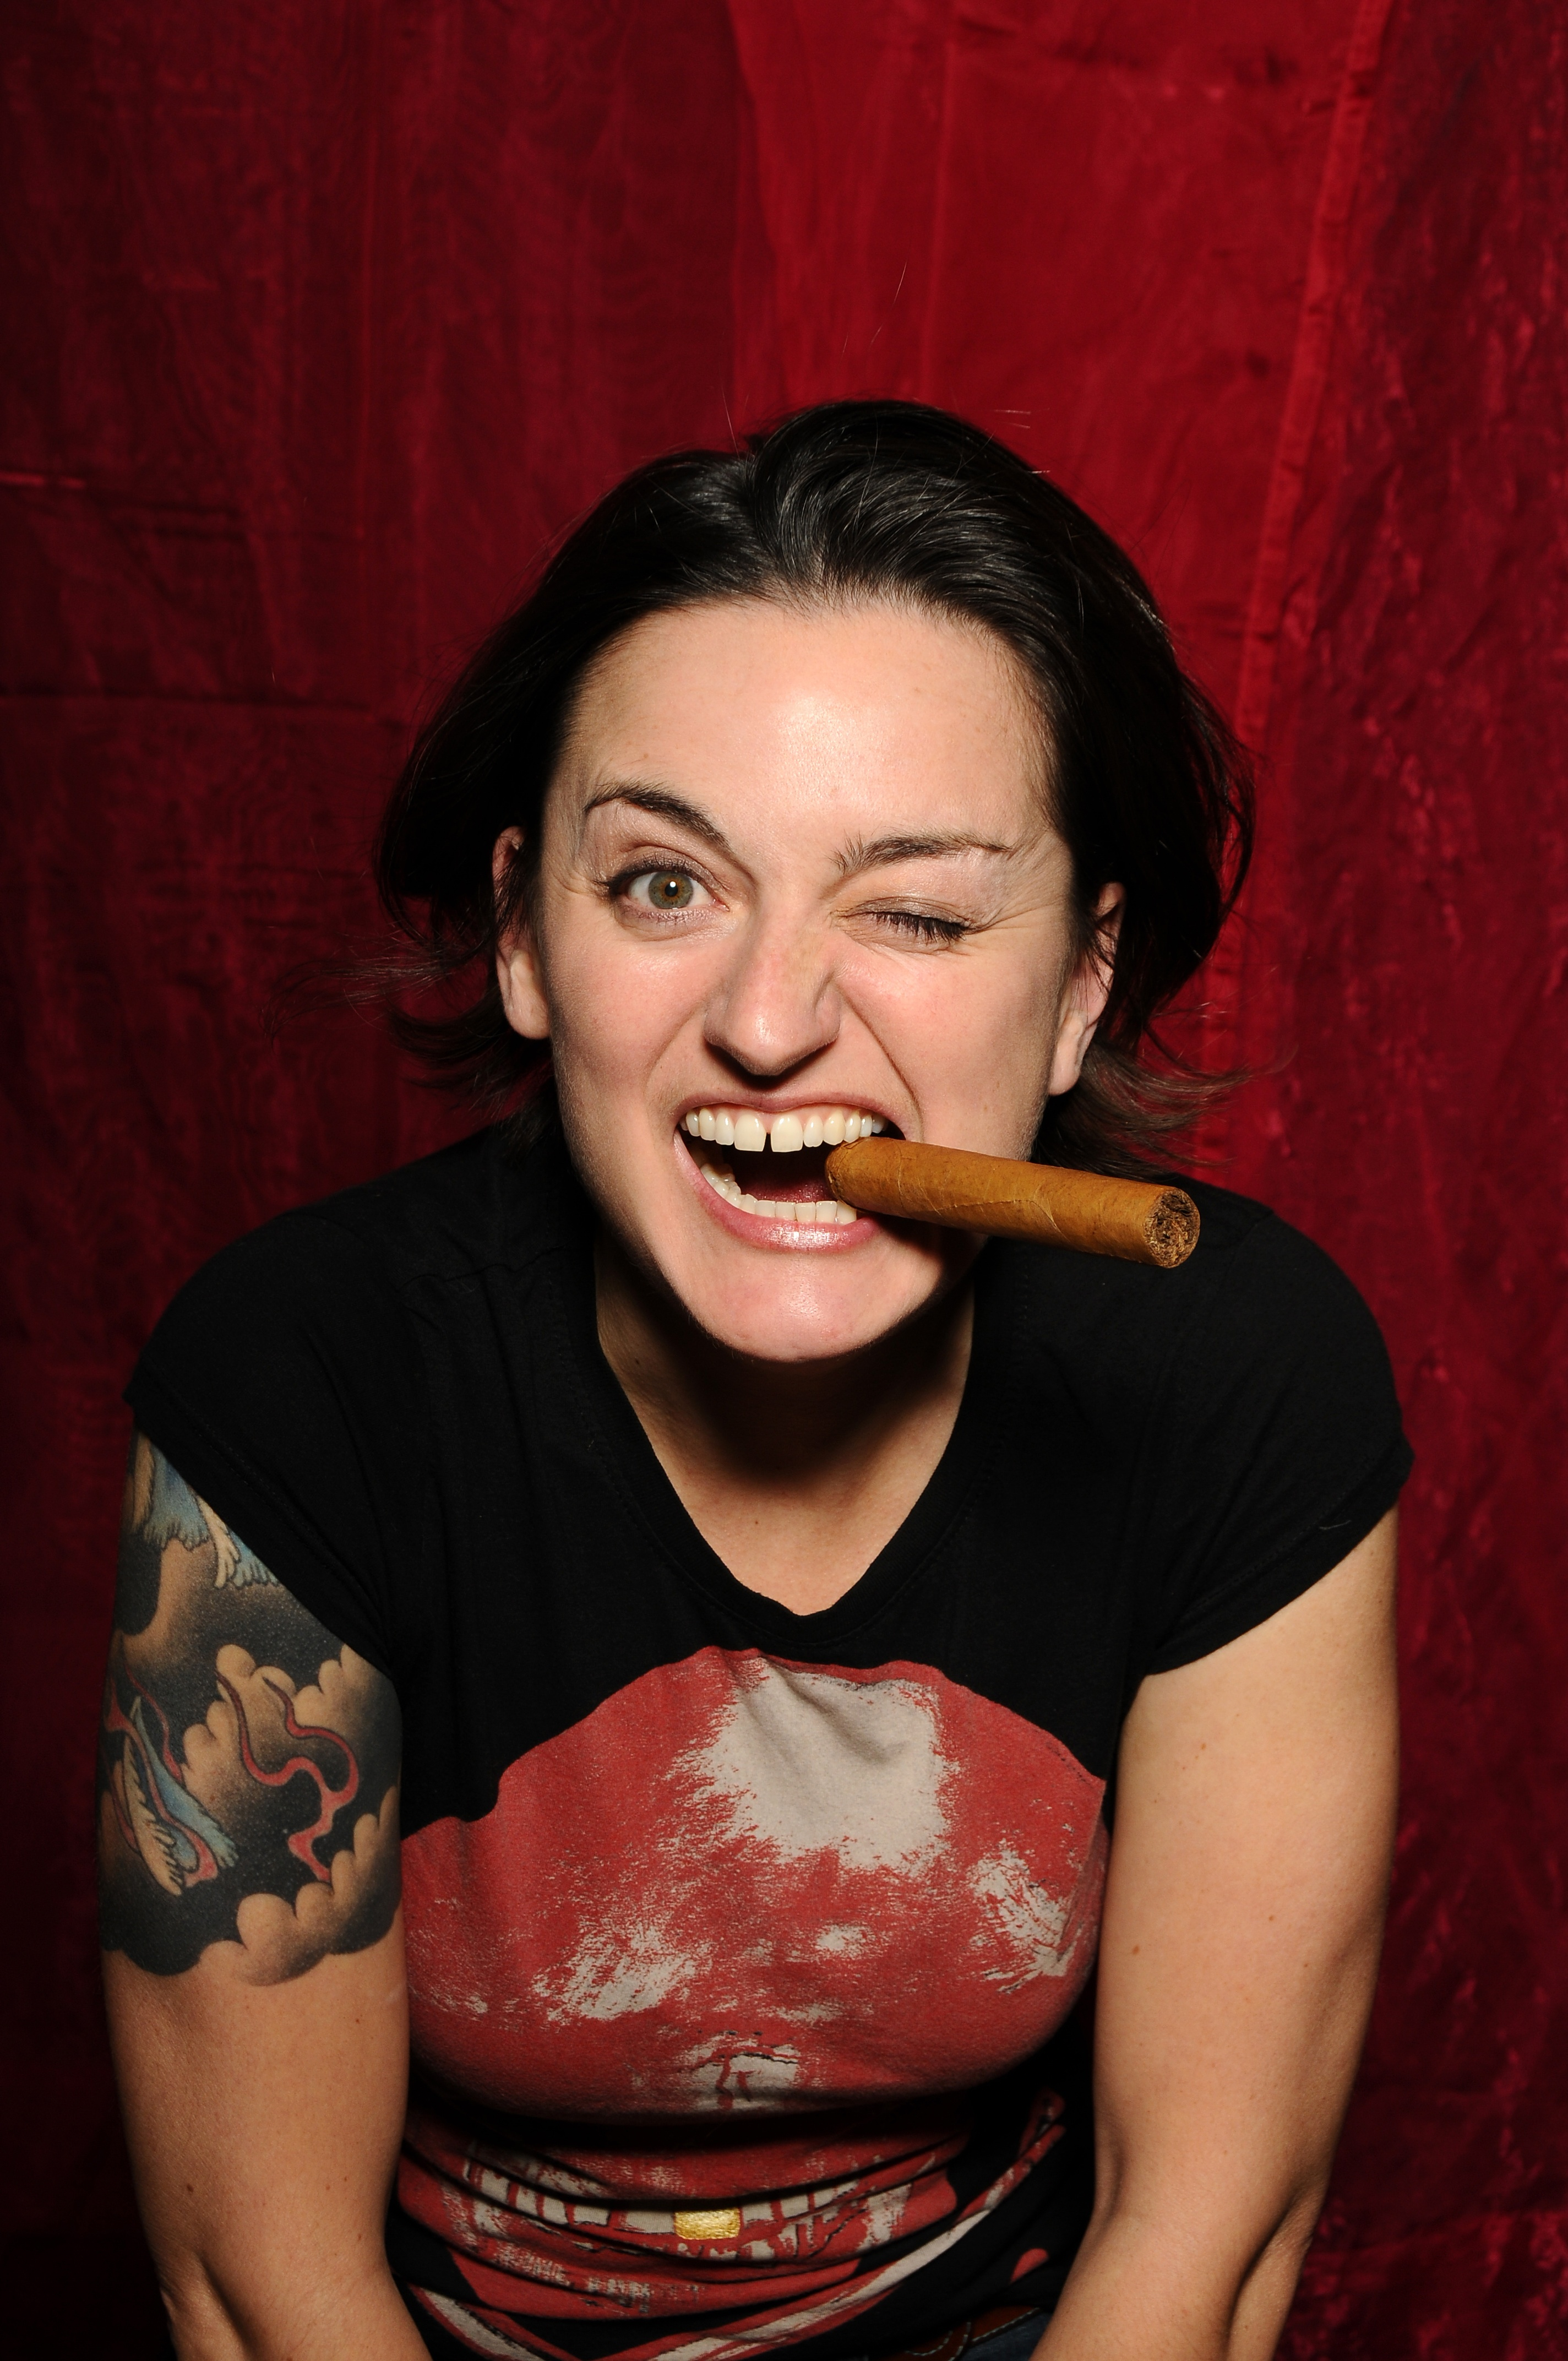 Zoe Lyons Zoe Lyons Wikipedia the free encyclopedia